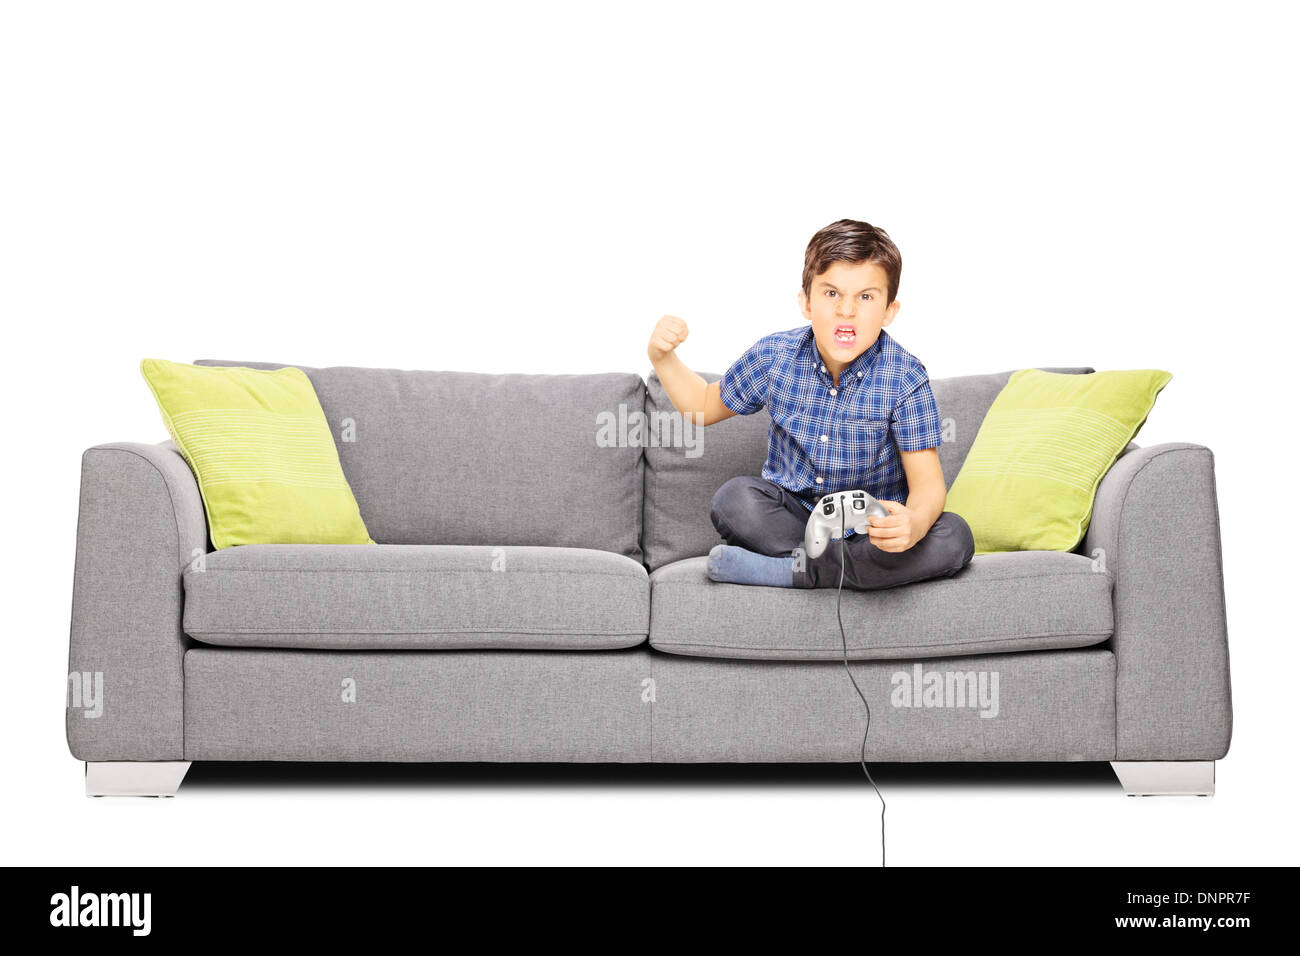 Nervous kid sitting on sofa and playing video games Stock